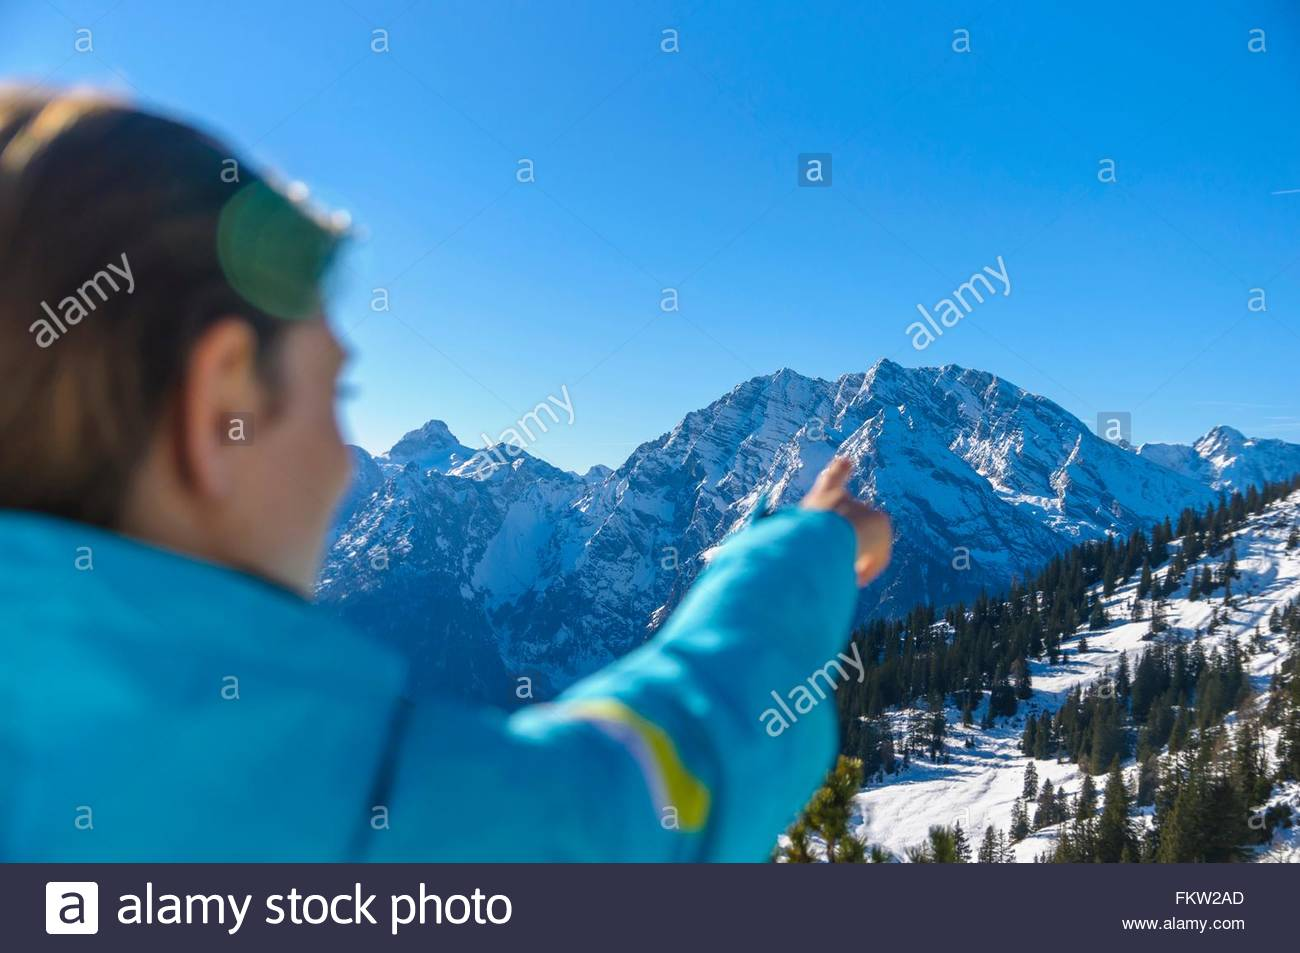 Over the shoulder view of skier pointing at snow capped mountain range, Jenner, Berchtesgadener, Germany - Stock Image